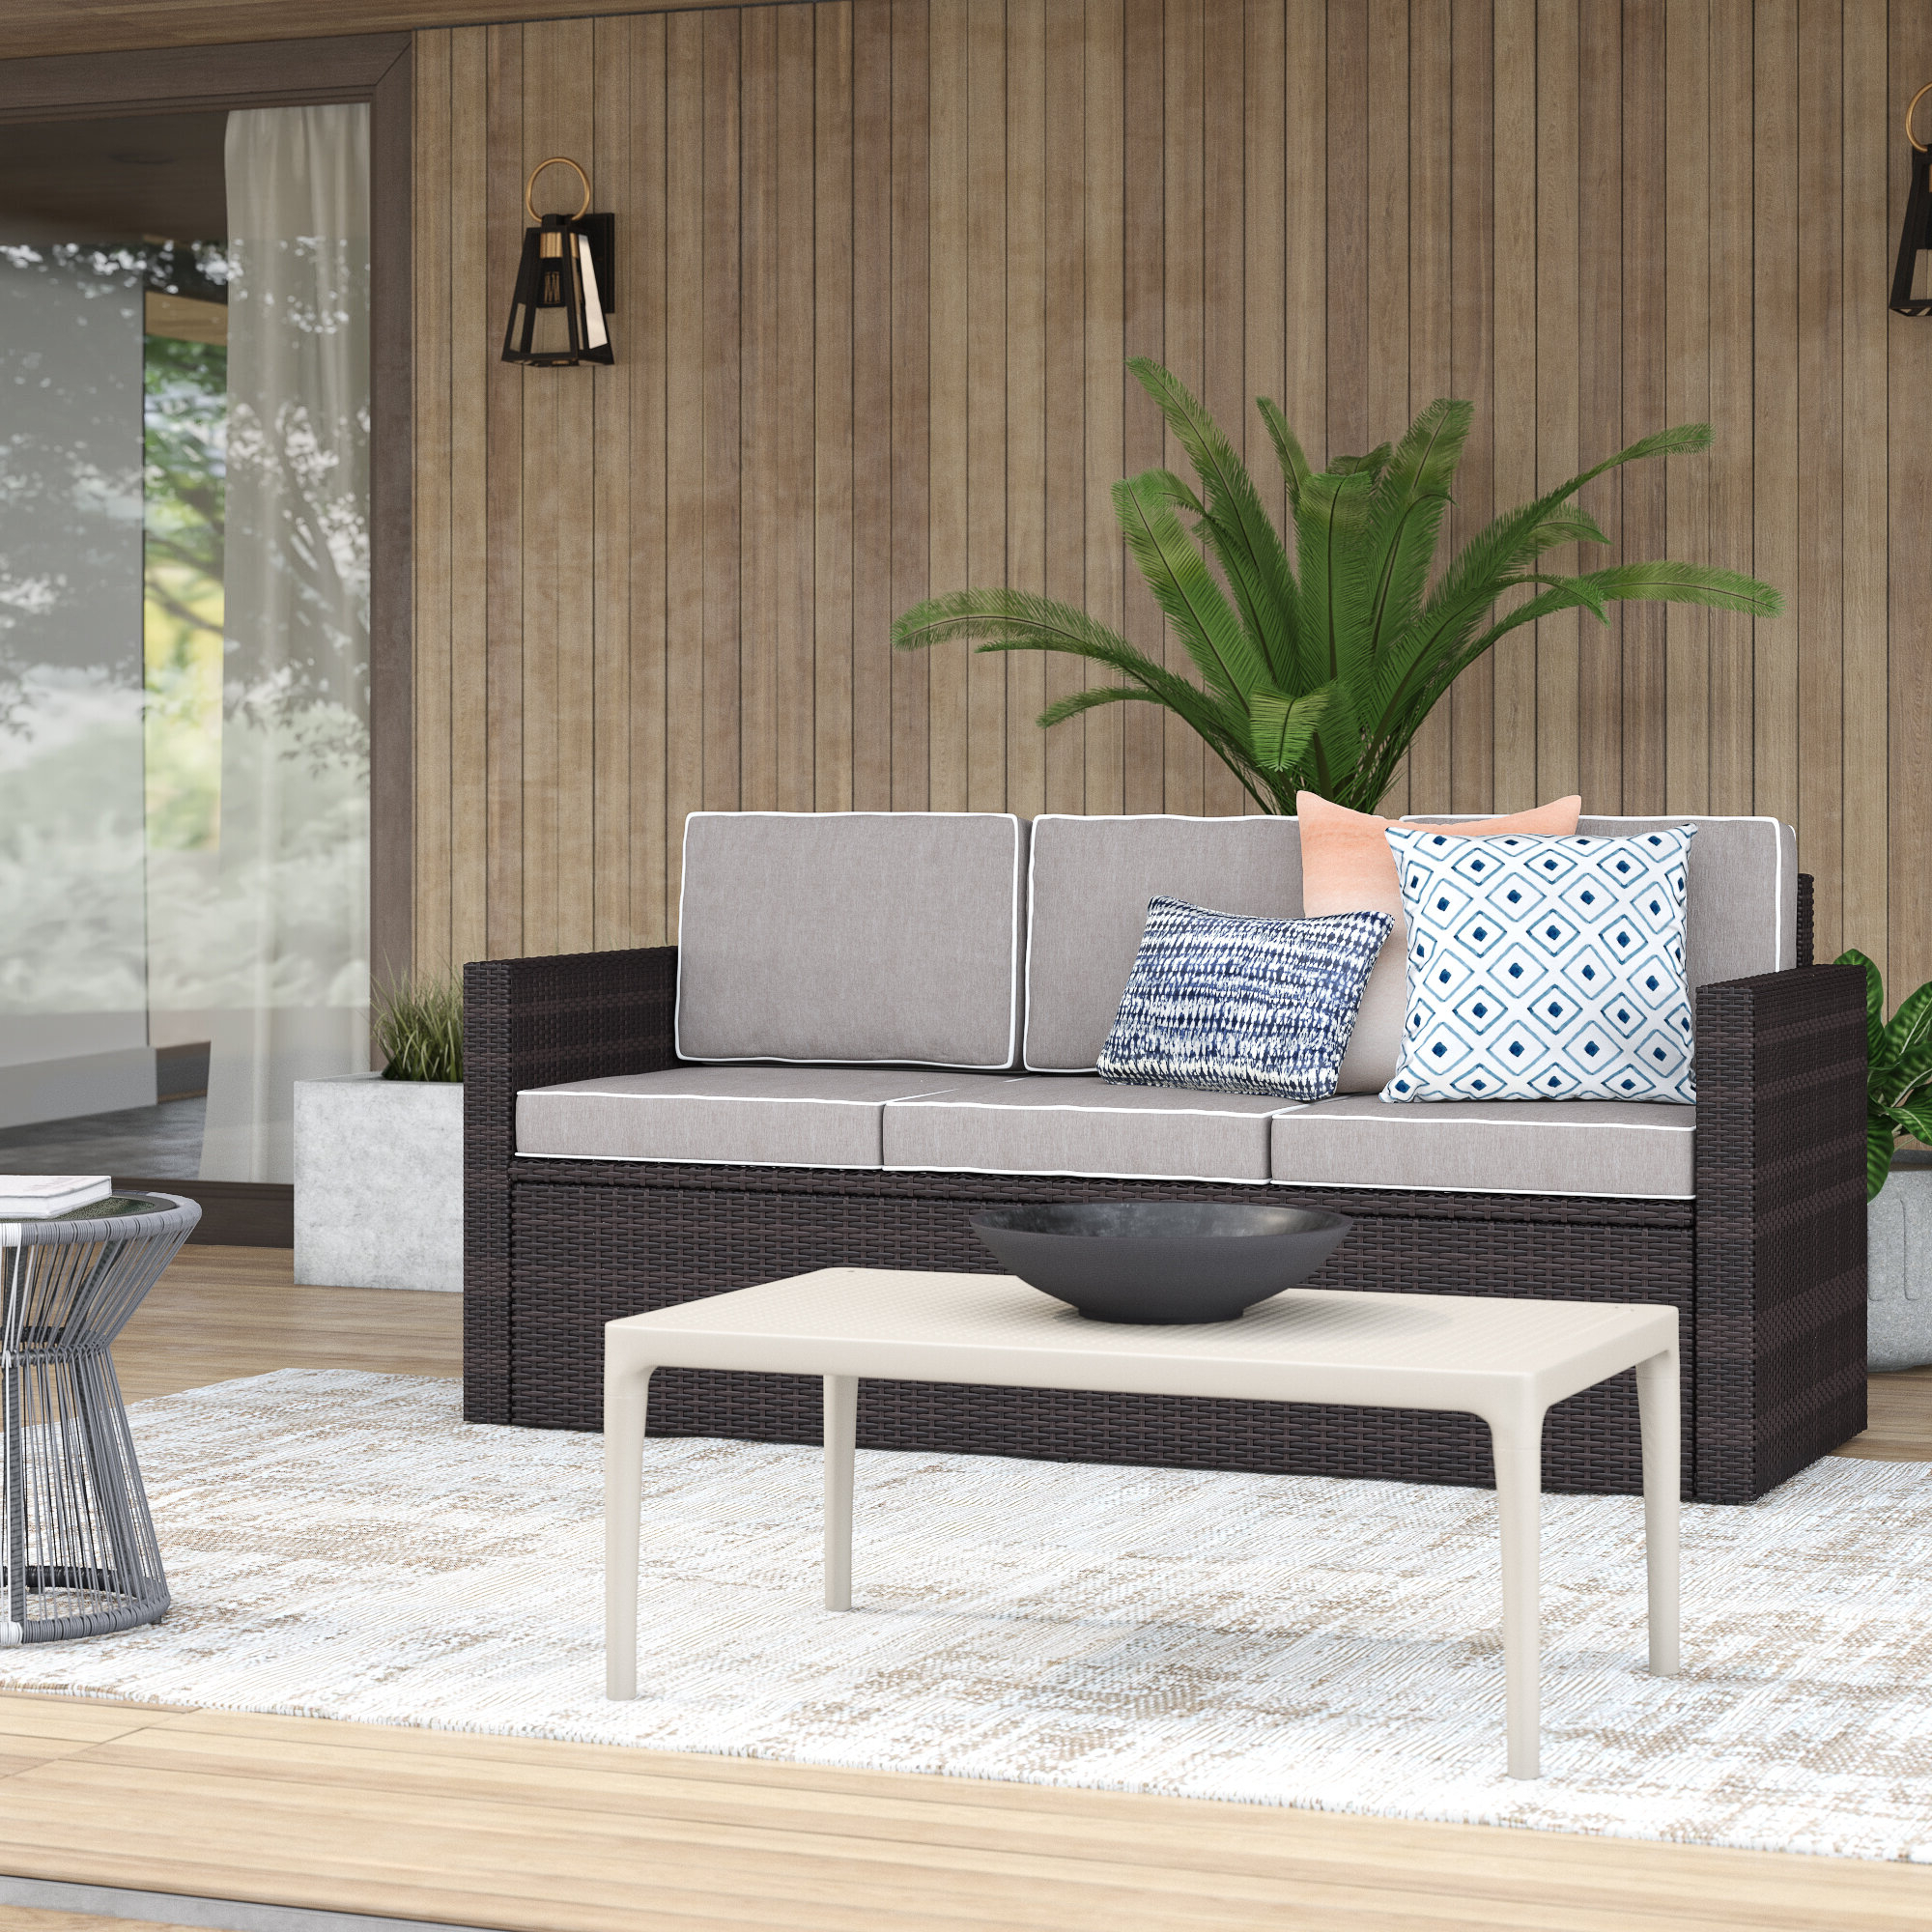 Belton Patio Sofa With Cushions With Preferred Katzer Patio Sofas With Cushions (View 3 of 20)